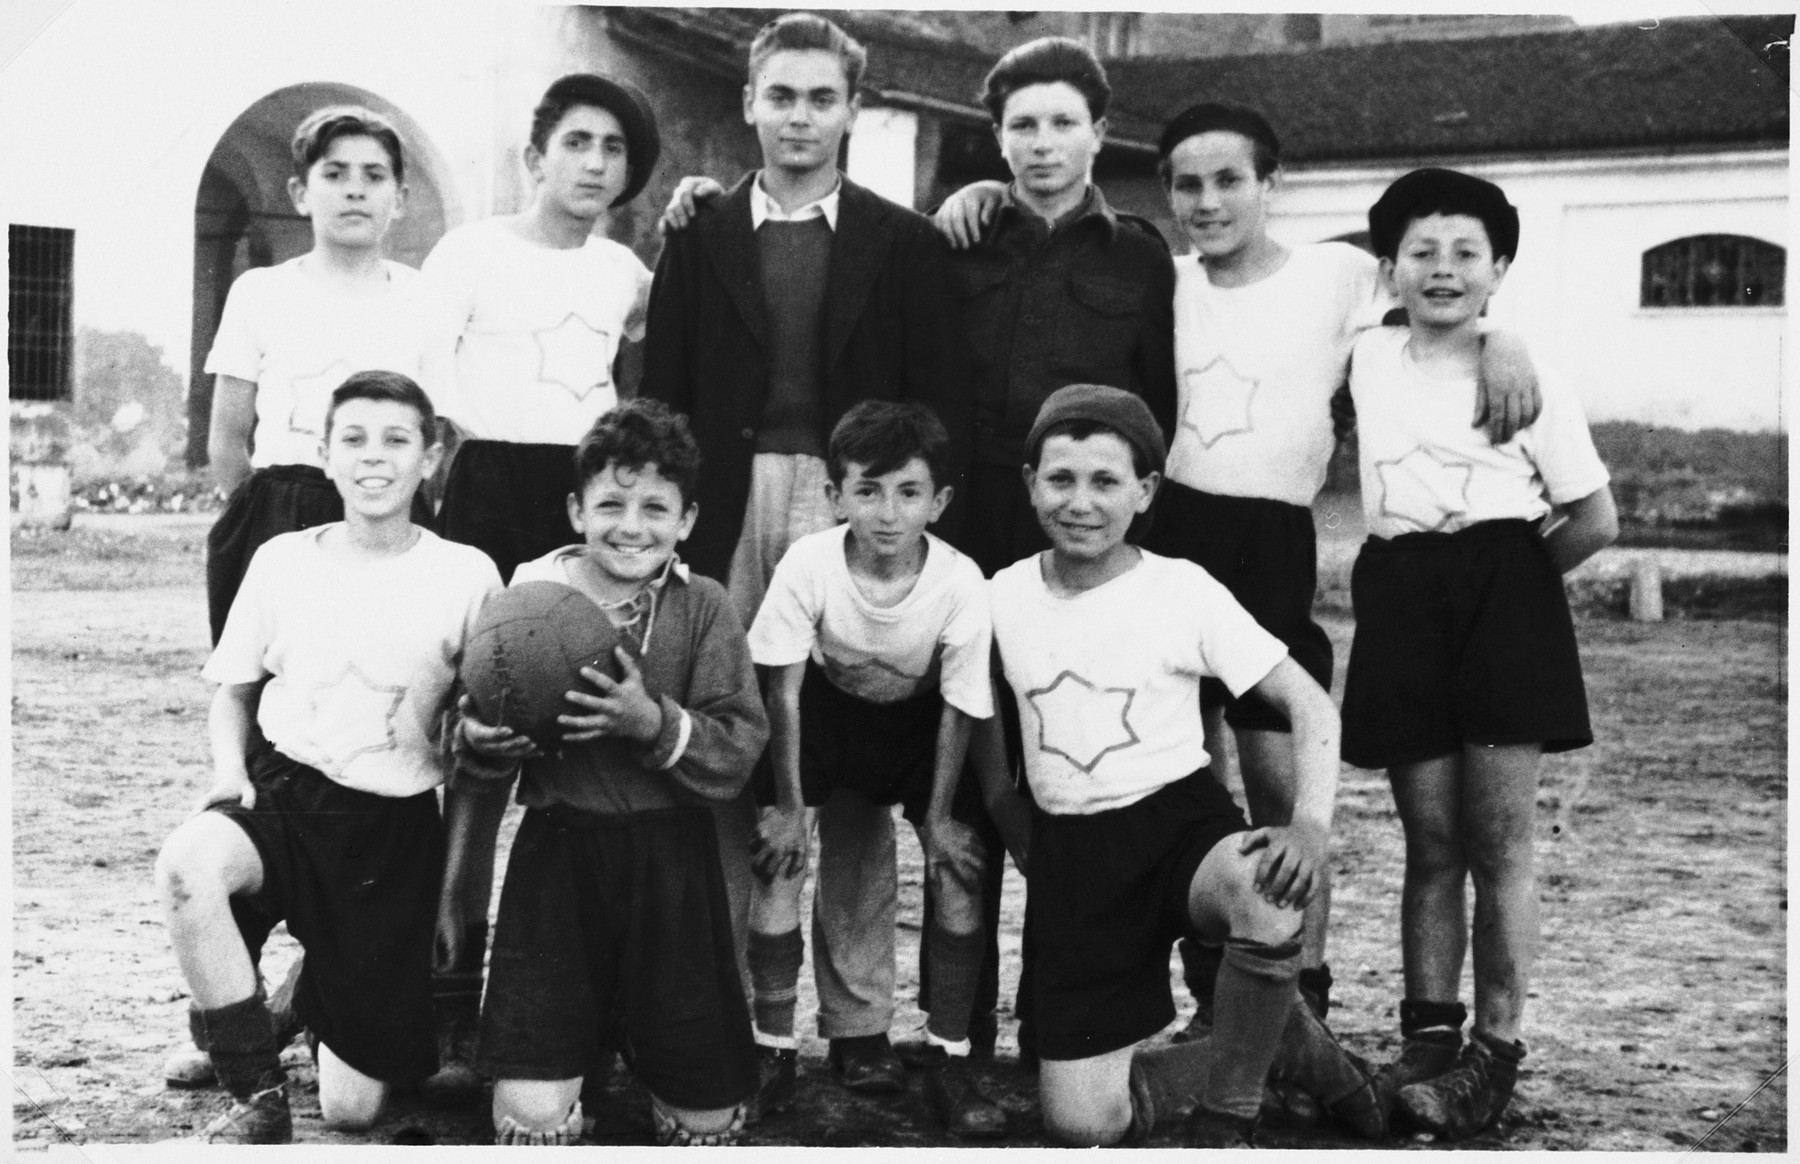 Group portrait of the members of a boy's soccer team wearing shirts with a Star of David.  Those pictured include Sam Freger (first row, second from the left), Ernst Schnittlinger (back row, center) and Shie Zoltak (back row, third from the right).